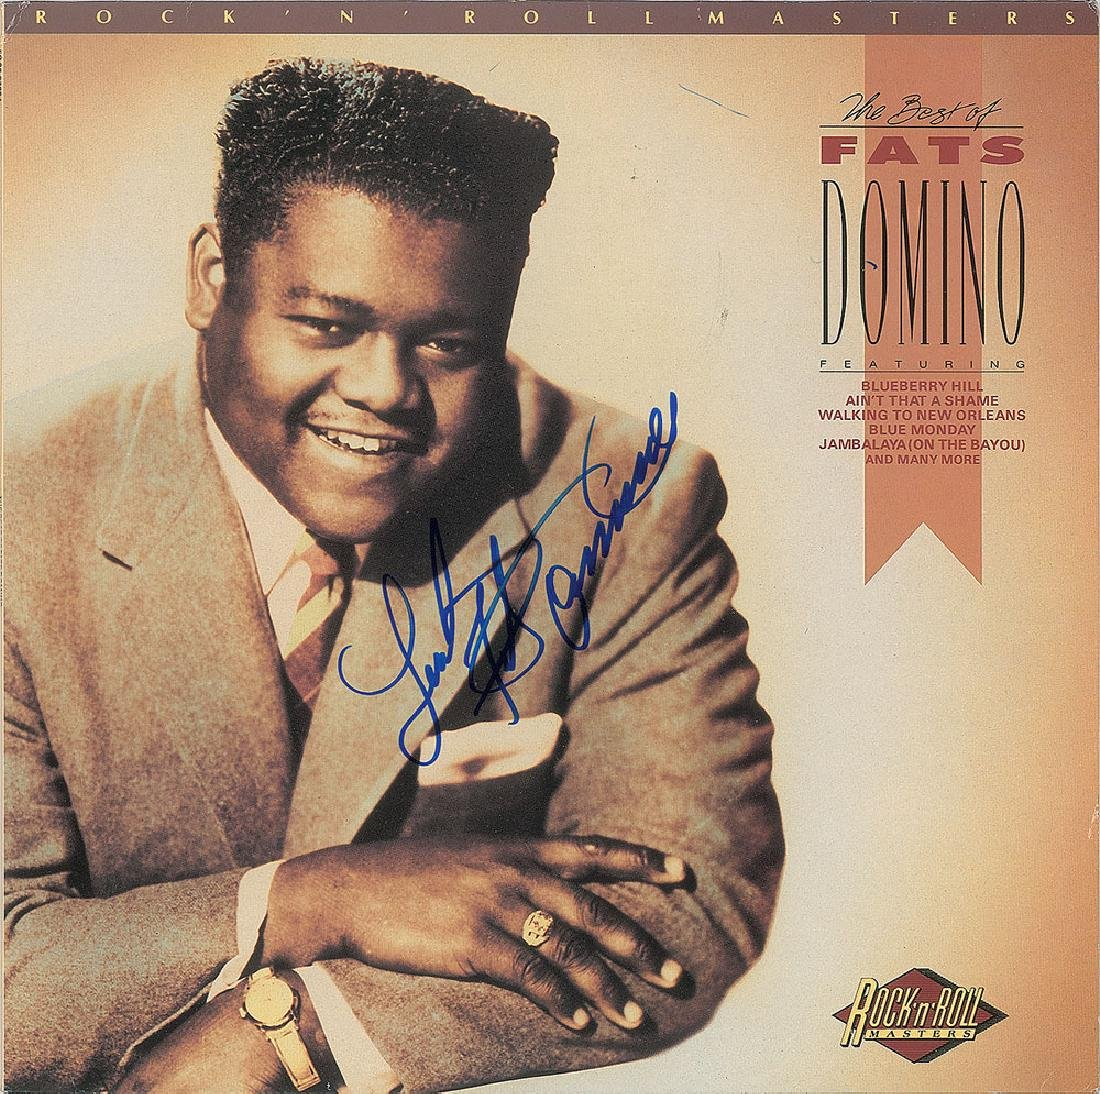 Fats Domino Signed Album